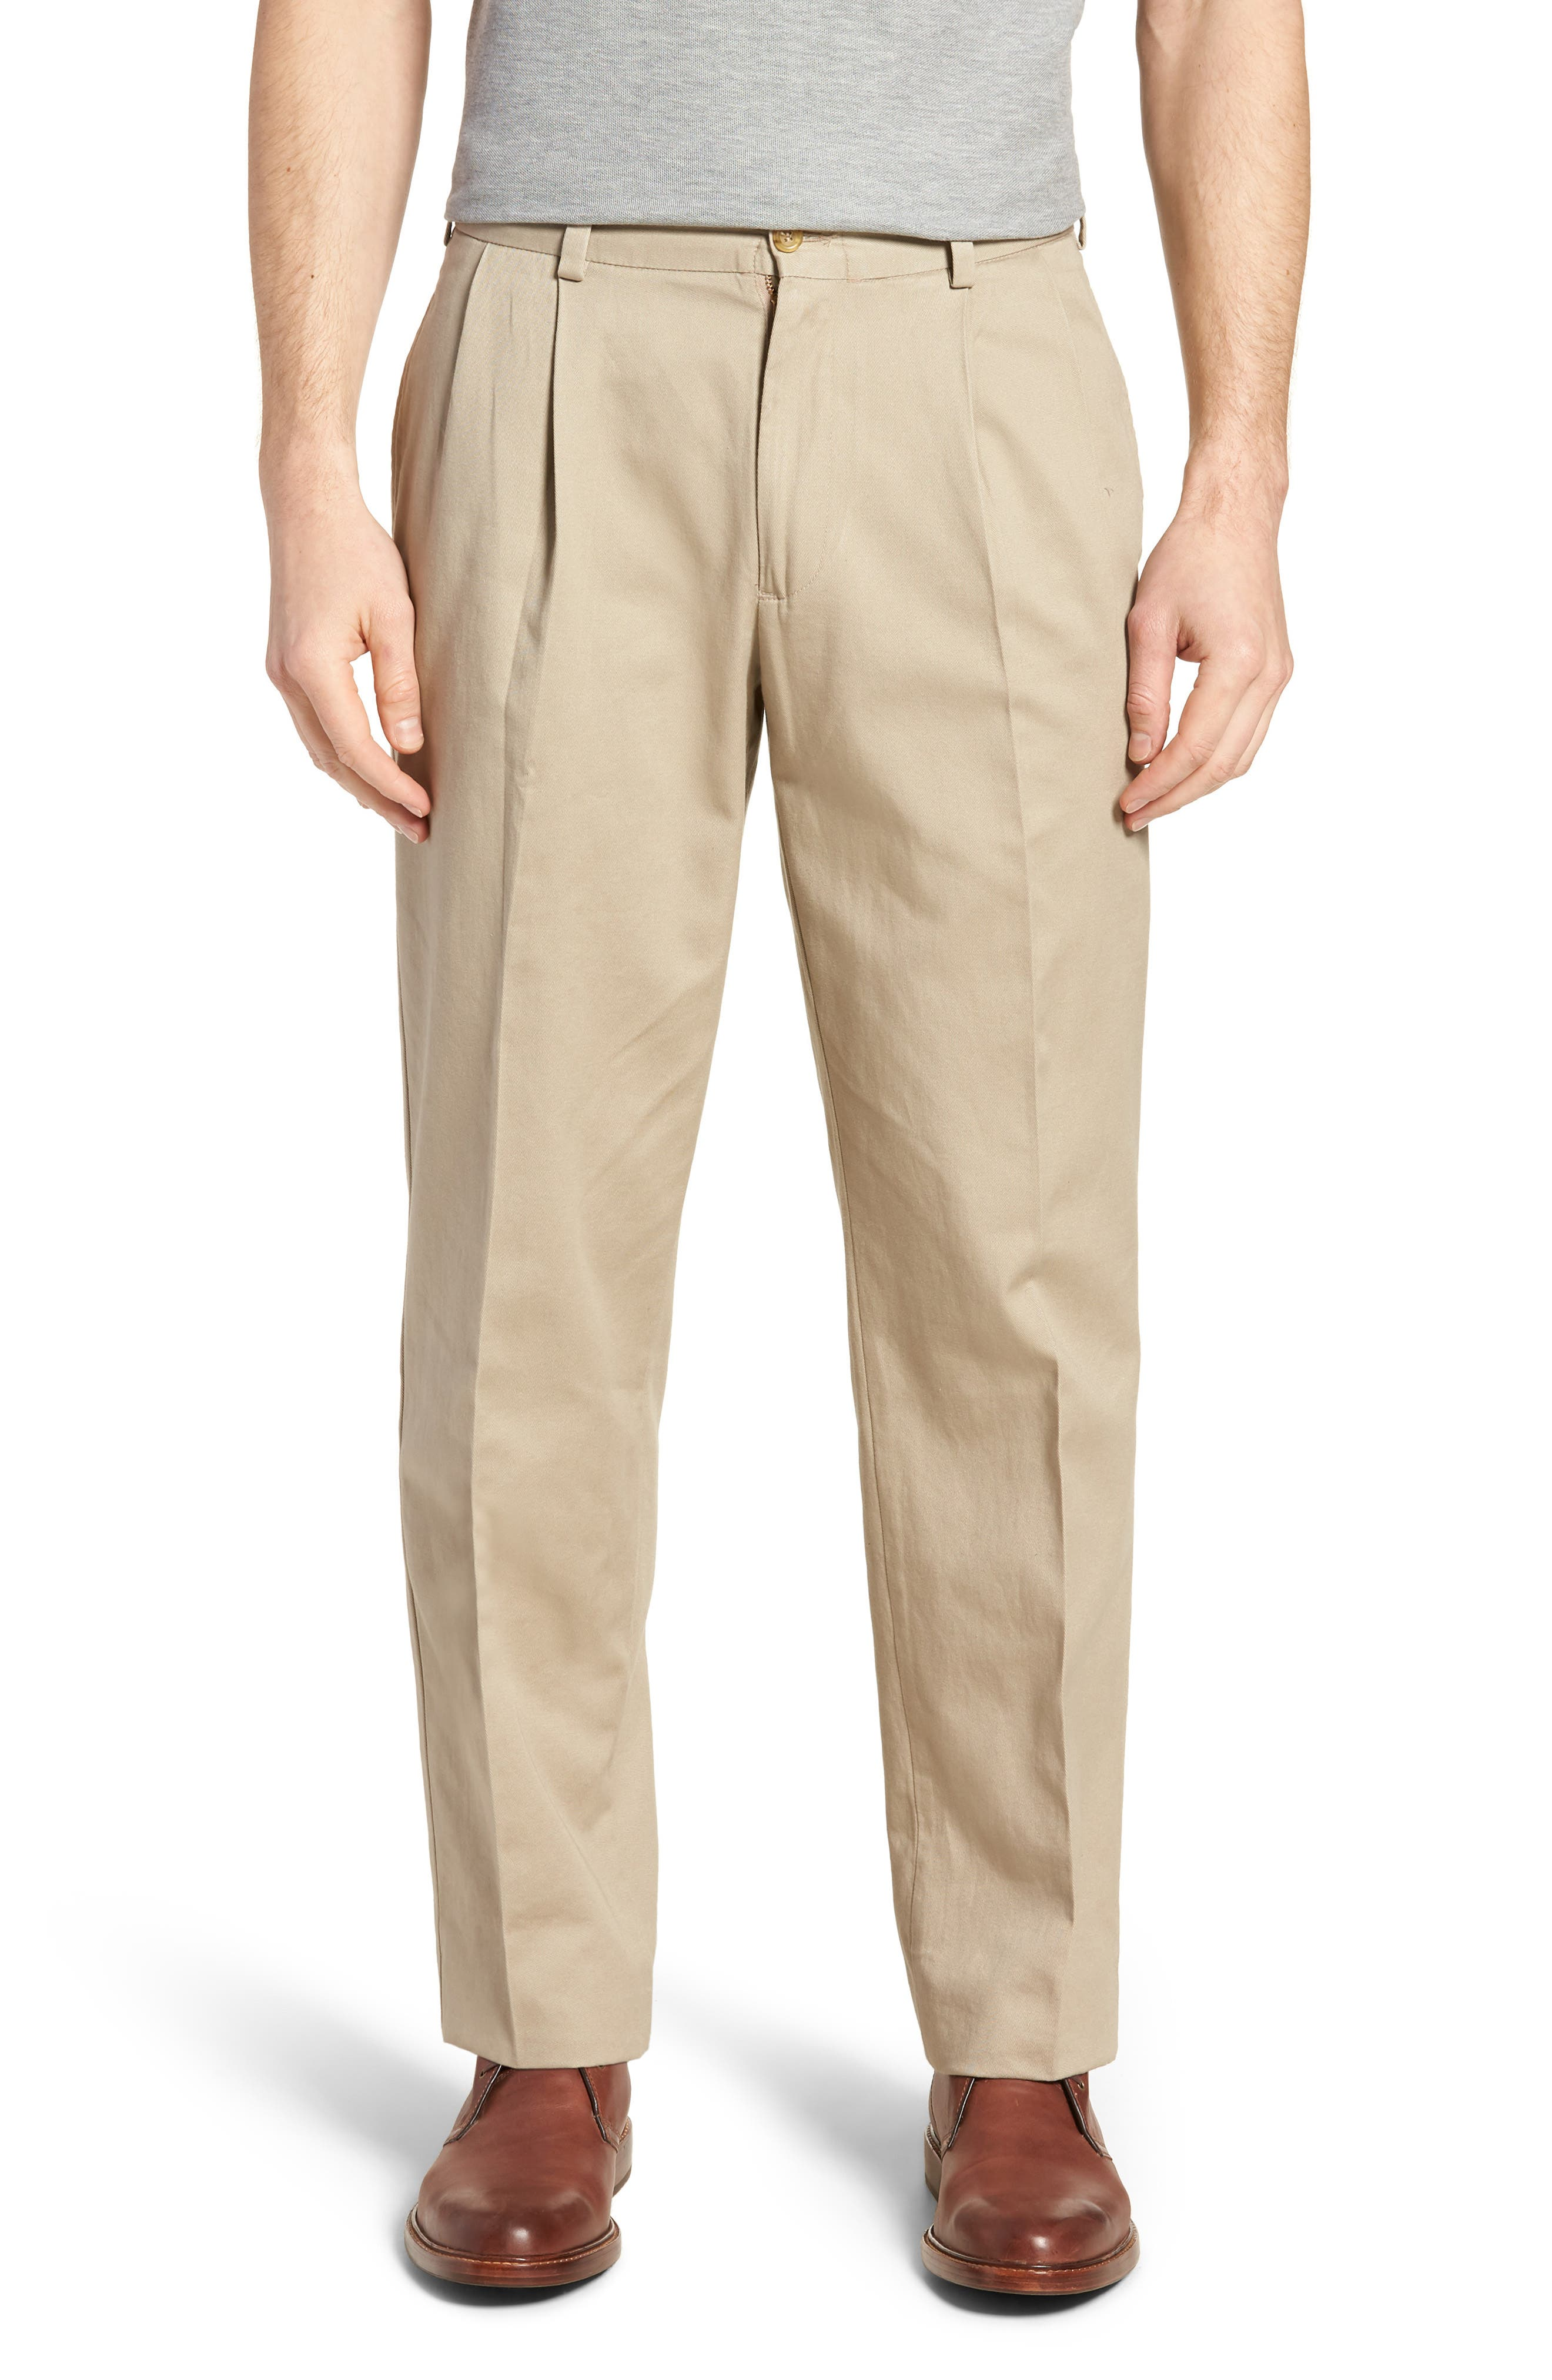 M2 Classic Fit Pleated Vintage Twill Pants,                             Main thumbnail 1, color,                             250